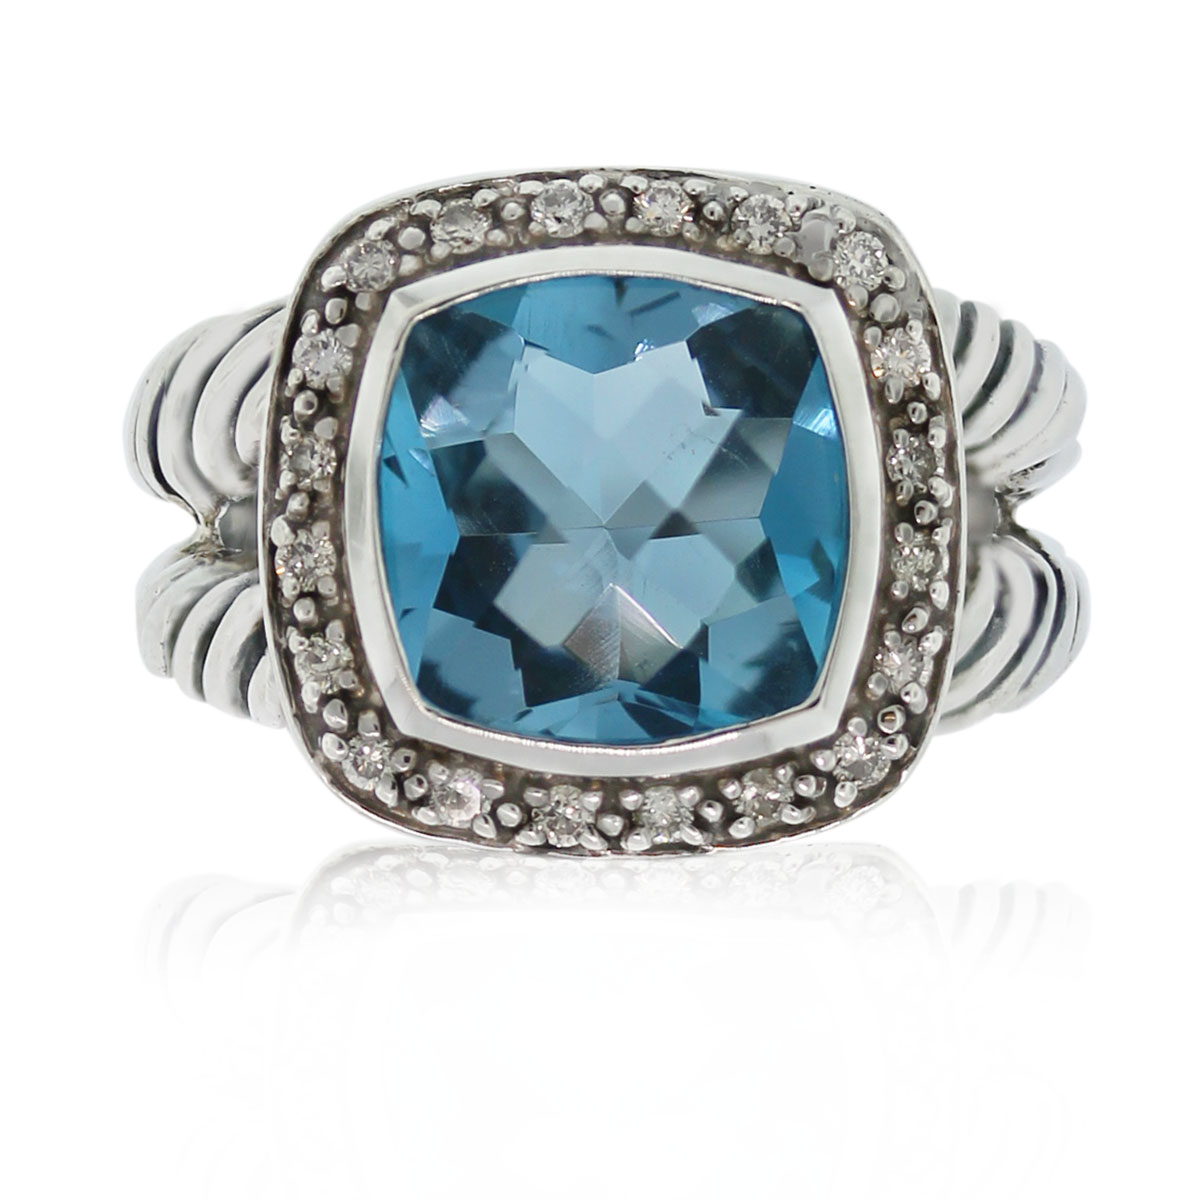 This David Yurman Albion Blue Topaz & Pave Diamond Split Shank Ring is gorgeous!